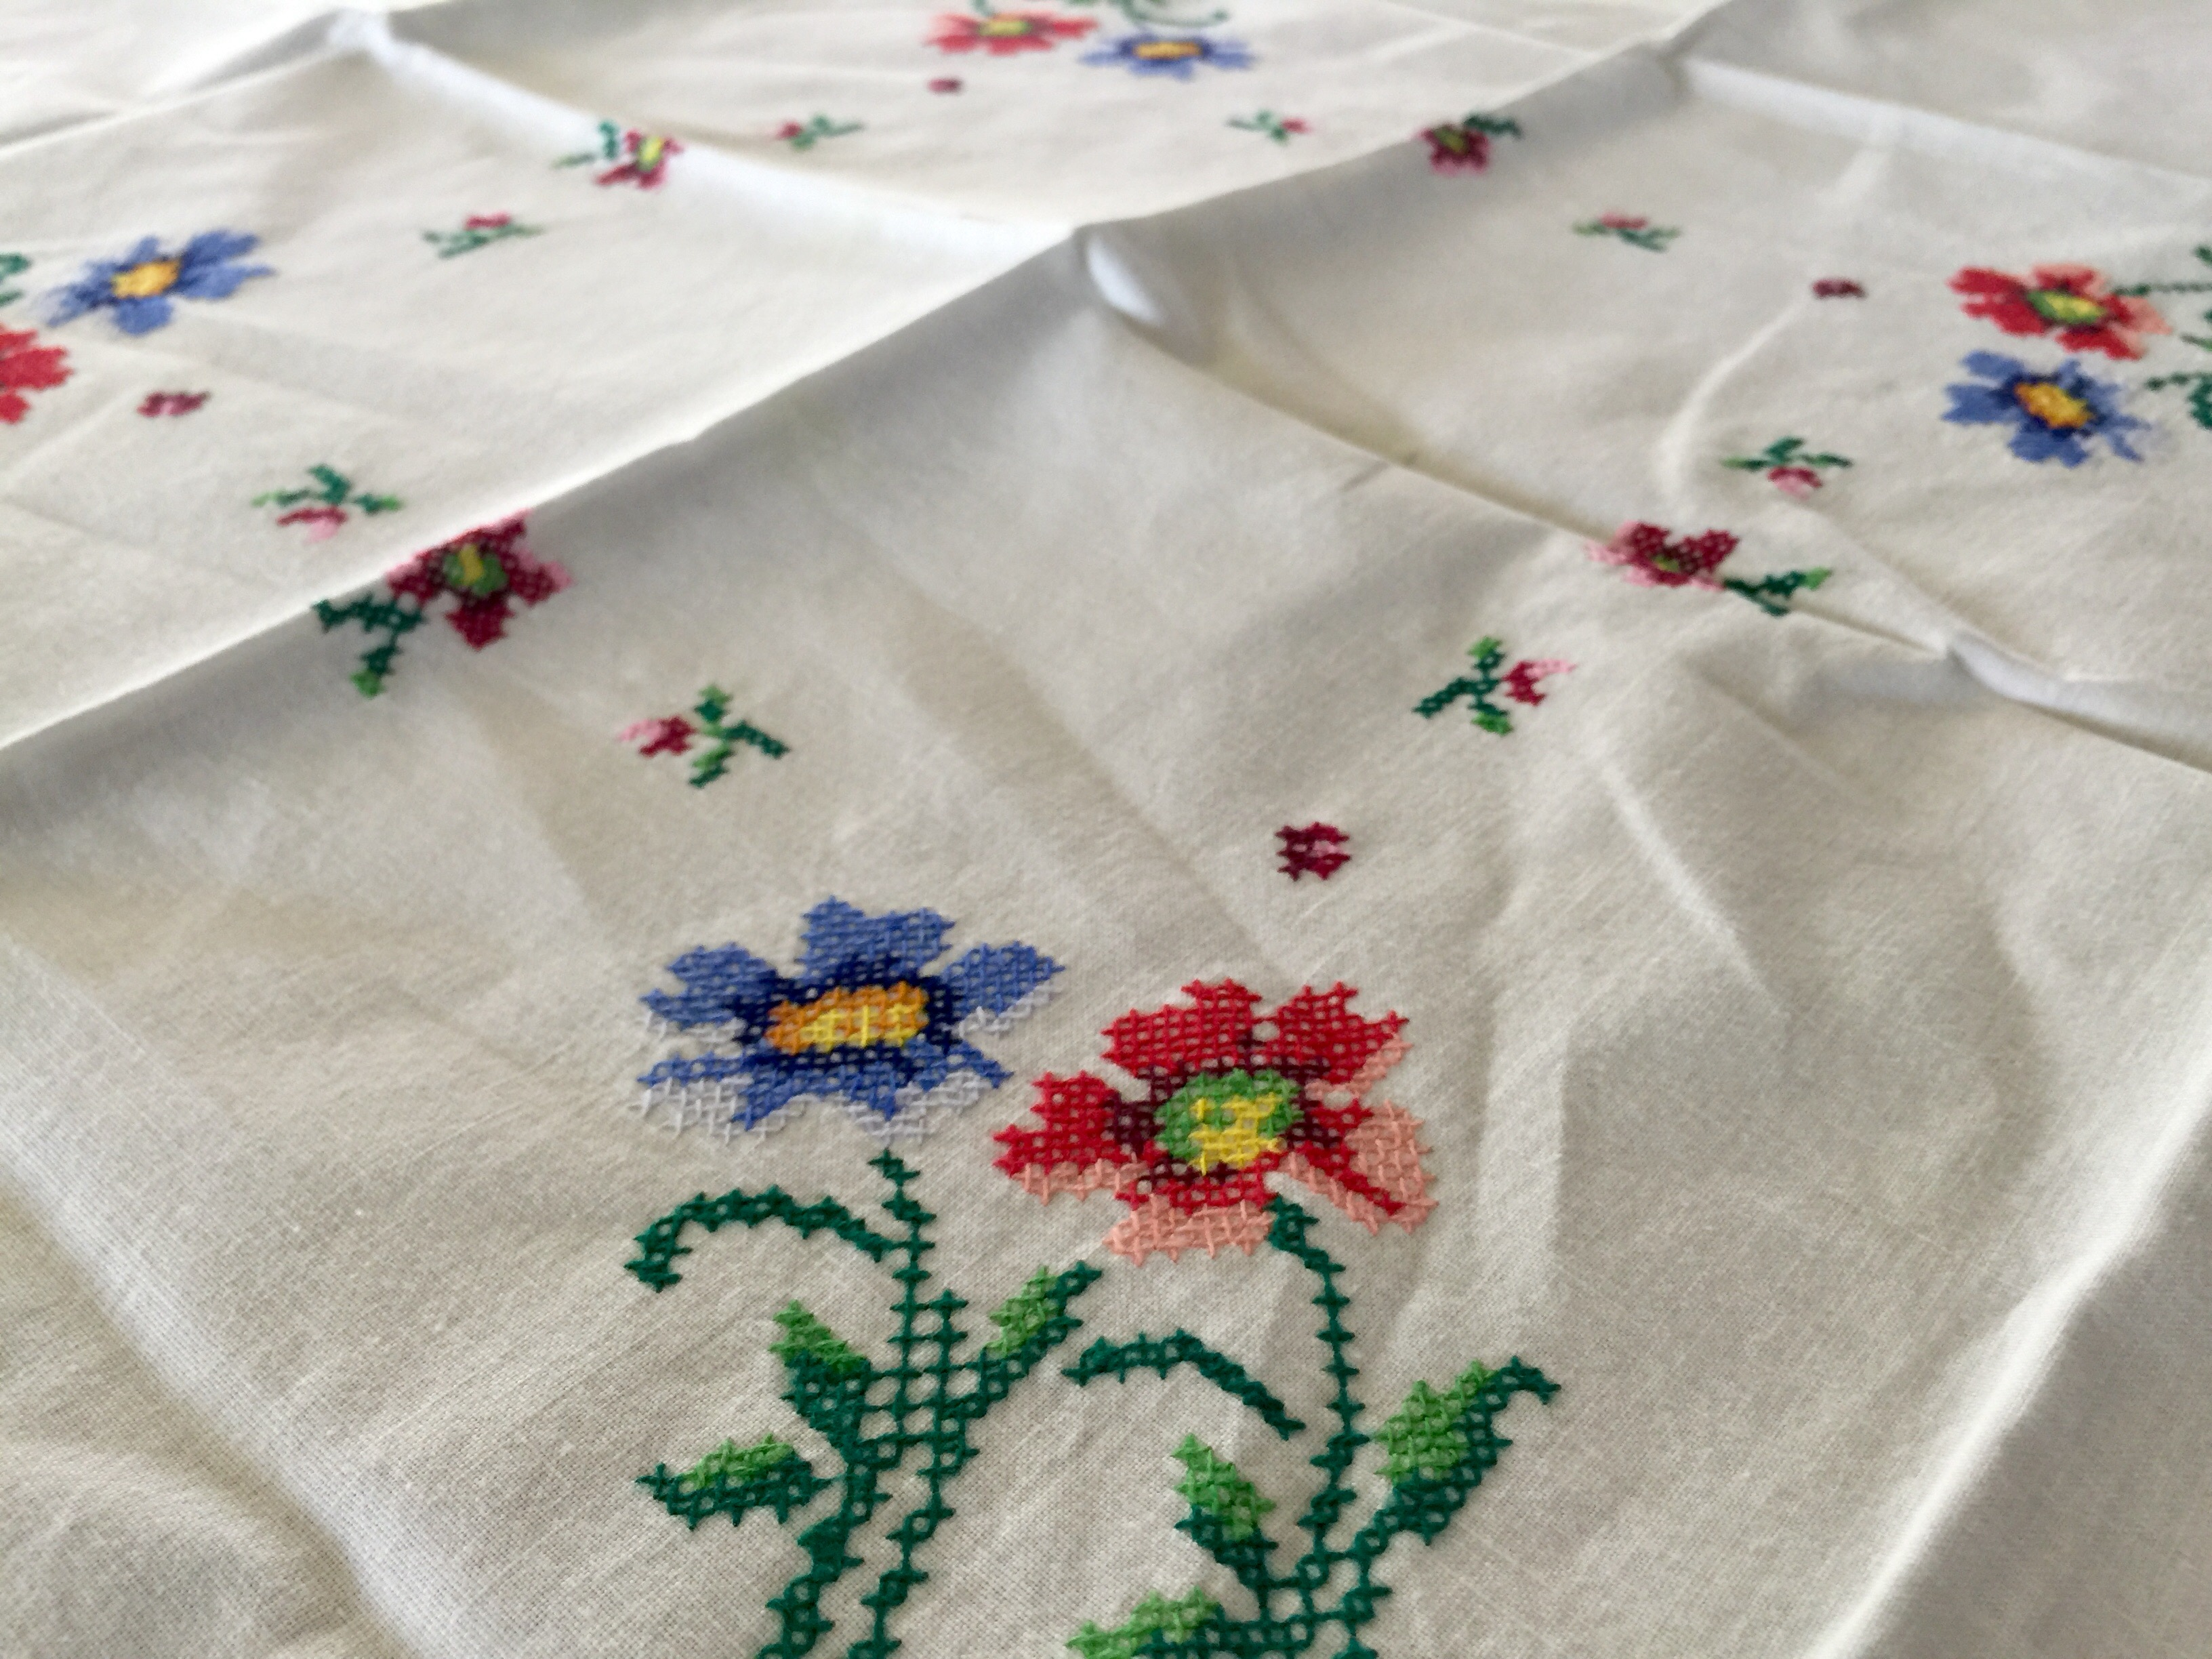 http://foodforayear.com/portfolio/for-sale-by-emily-32-x-32-hand-embroidered-cross-stitch-table-square-28/